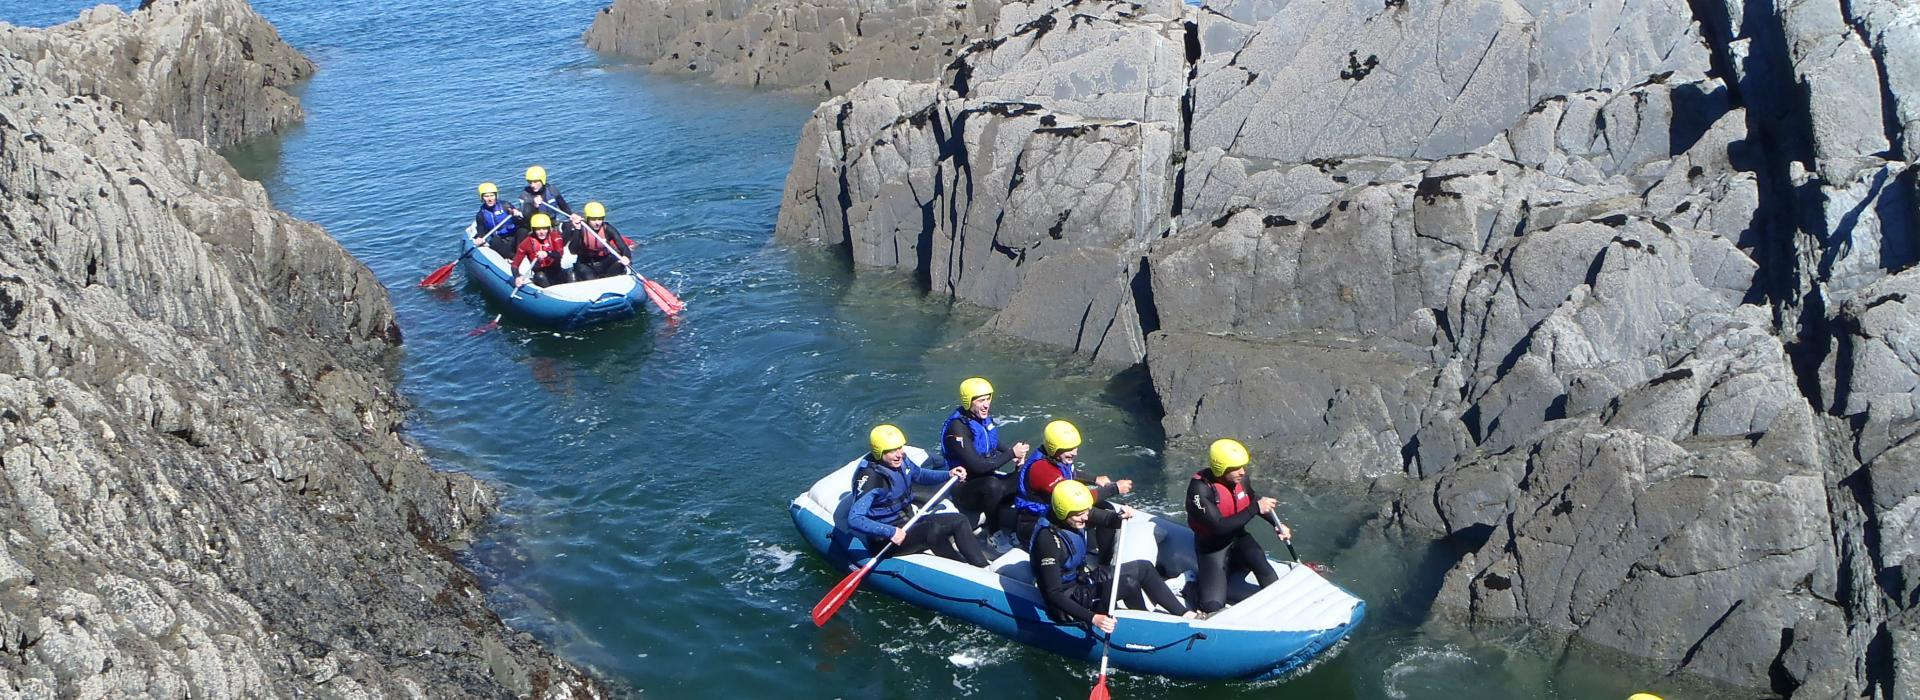 coastal rafting, watersports centre, ilfracombe, north devon, things to do in devon